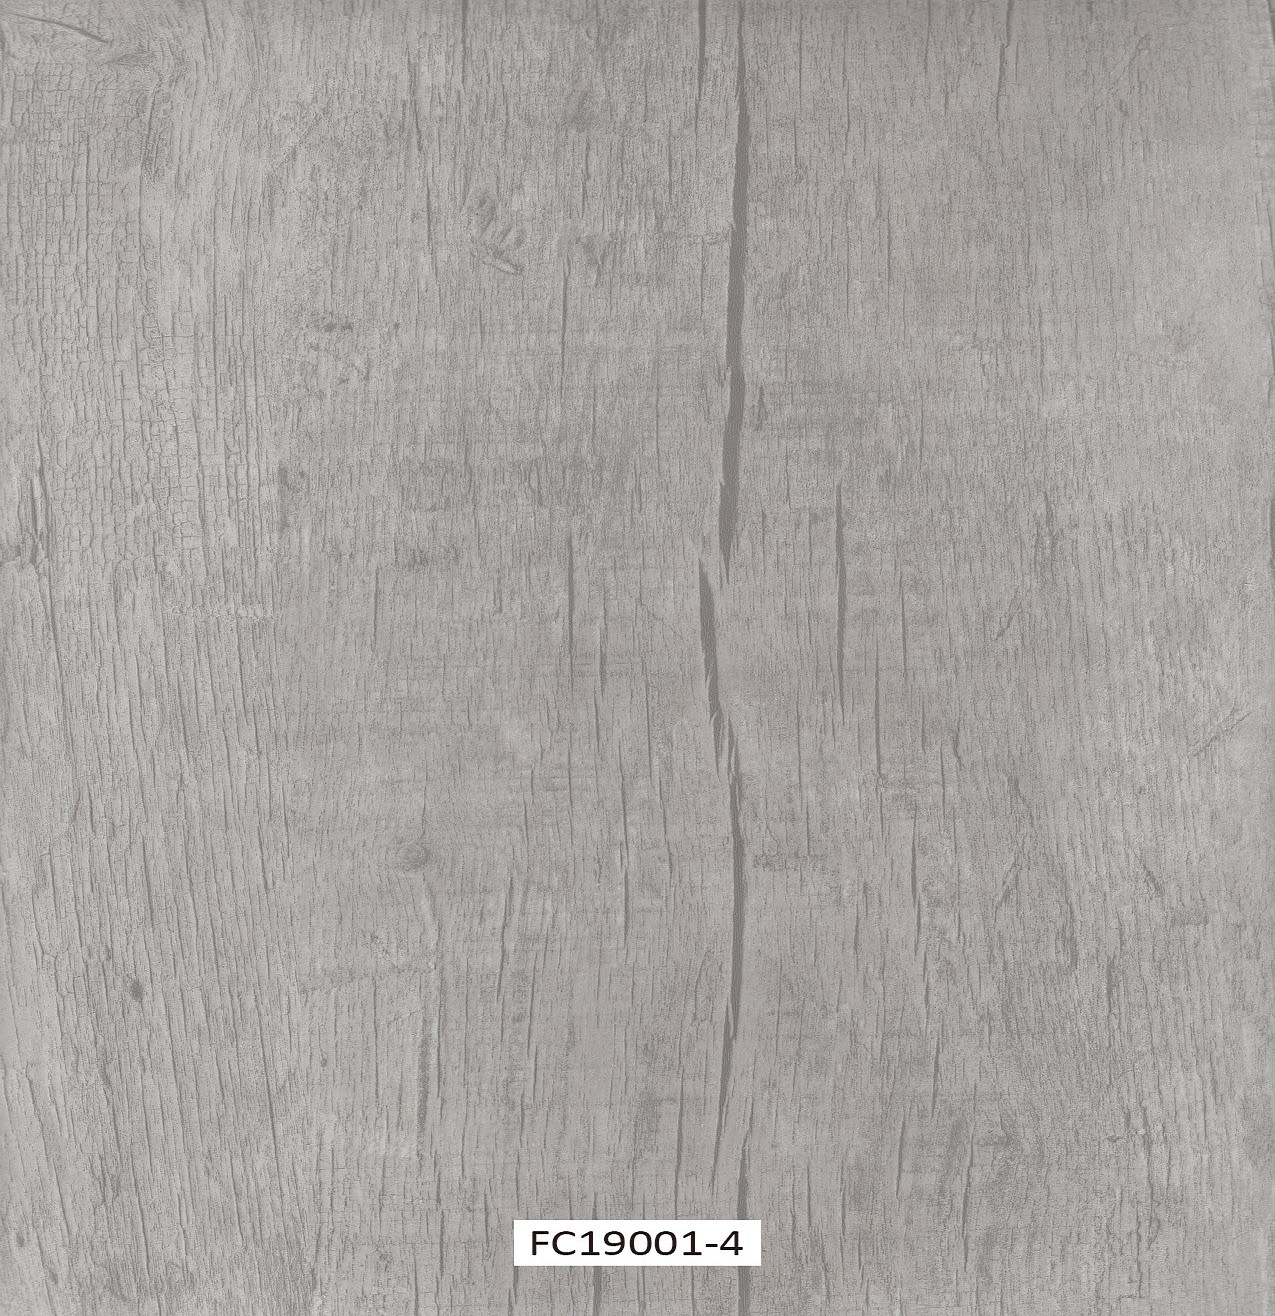 Residential Loose Lay Vinyl Flooring With Anti